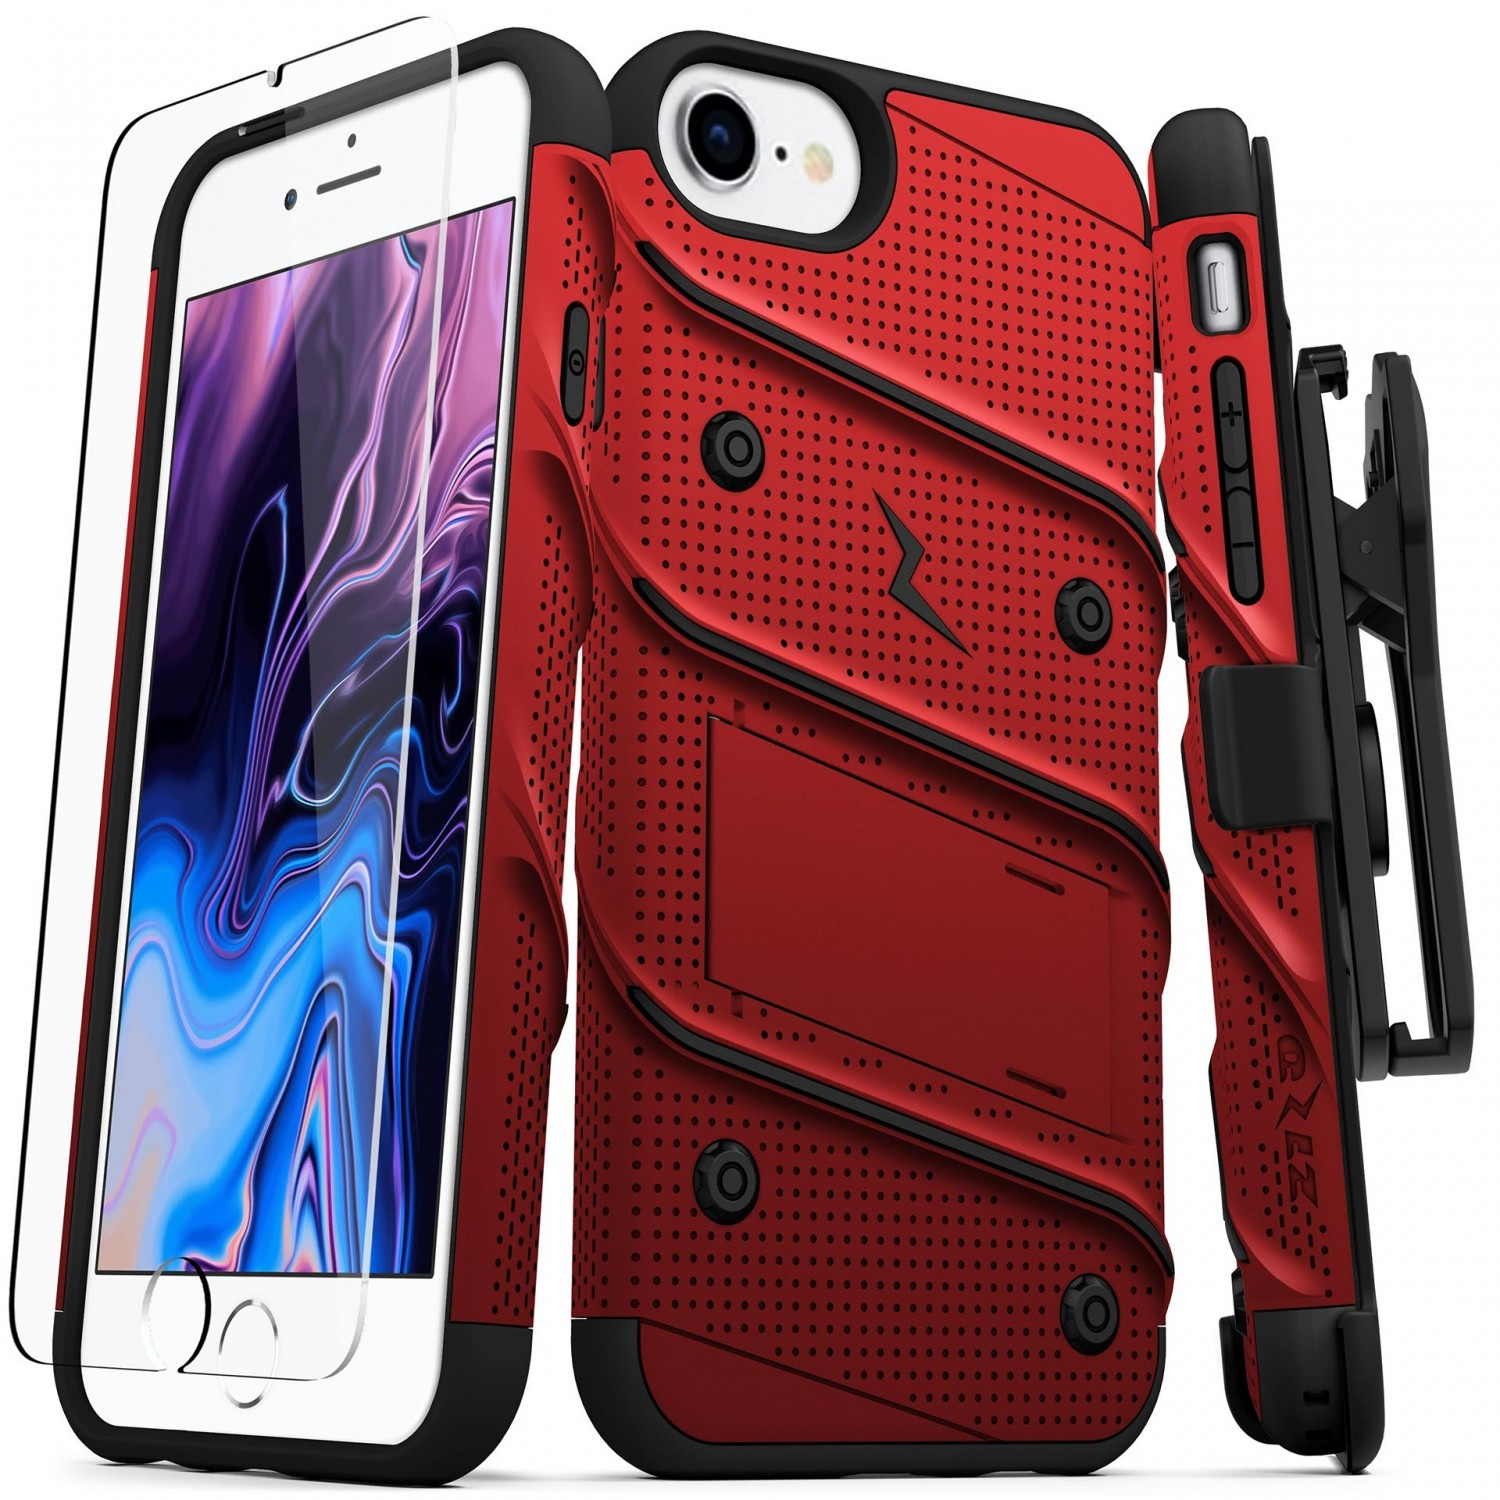 . Funda ZIZO Bolt iPhone SE2/8/7/6s/6 Rojo/Negro